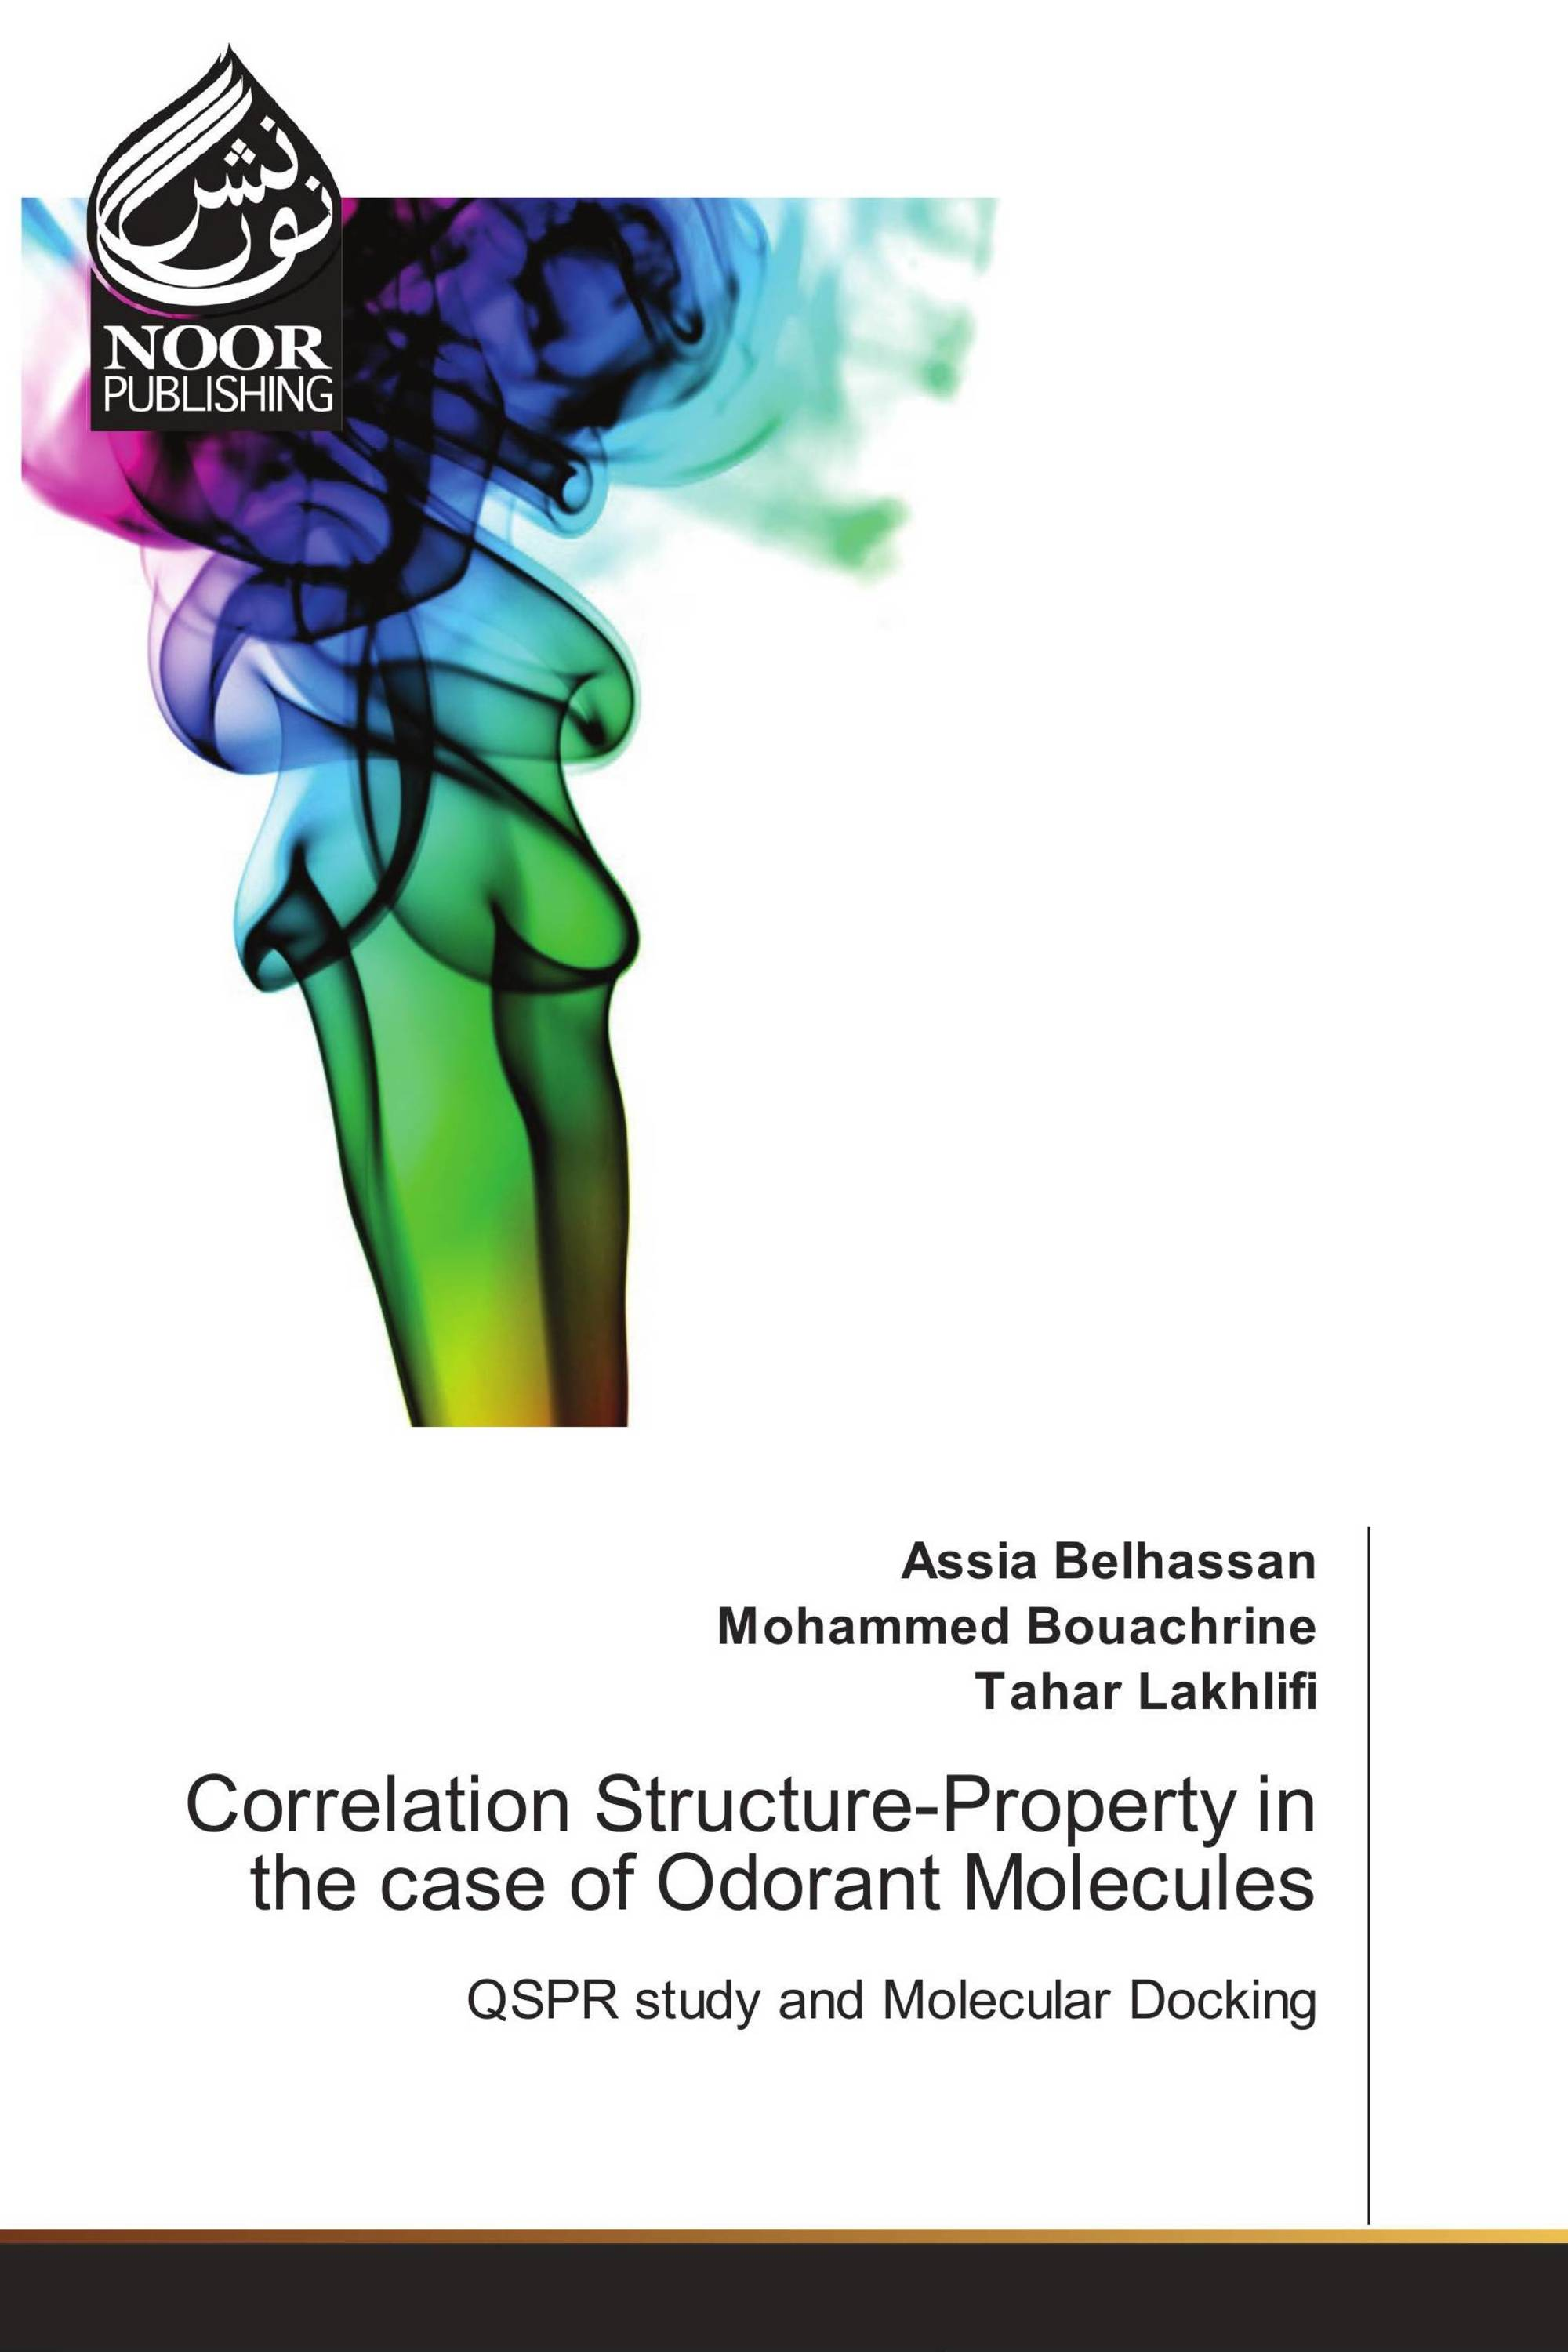 Correlation Structure-Property in the case of Odorant Molecules